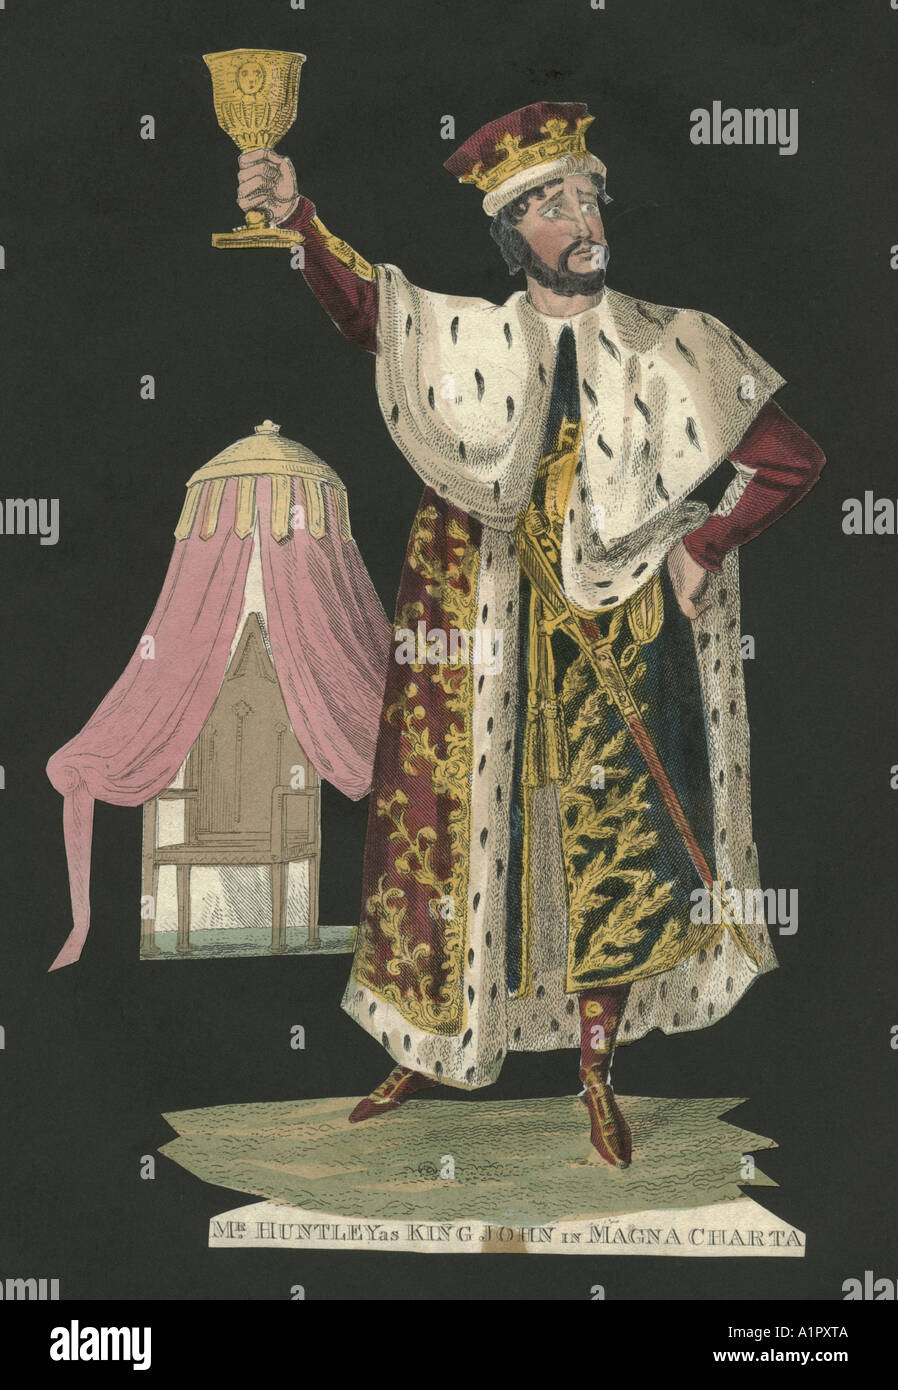 Theatrical portrait of Mr Huntley as King John in Magna Charta circa 1830 Stock Photo